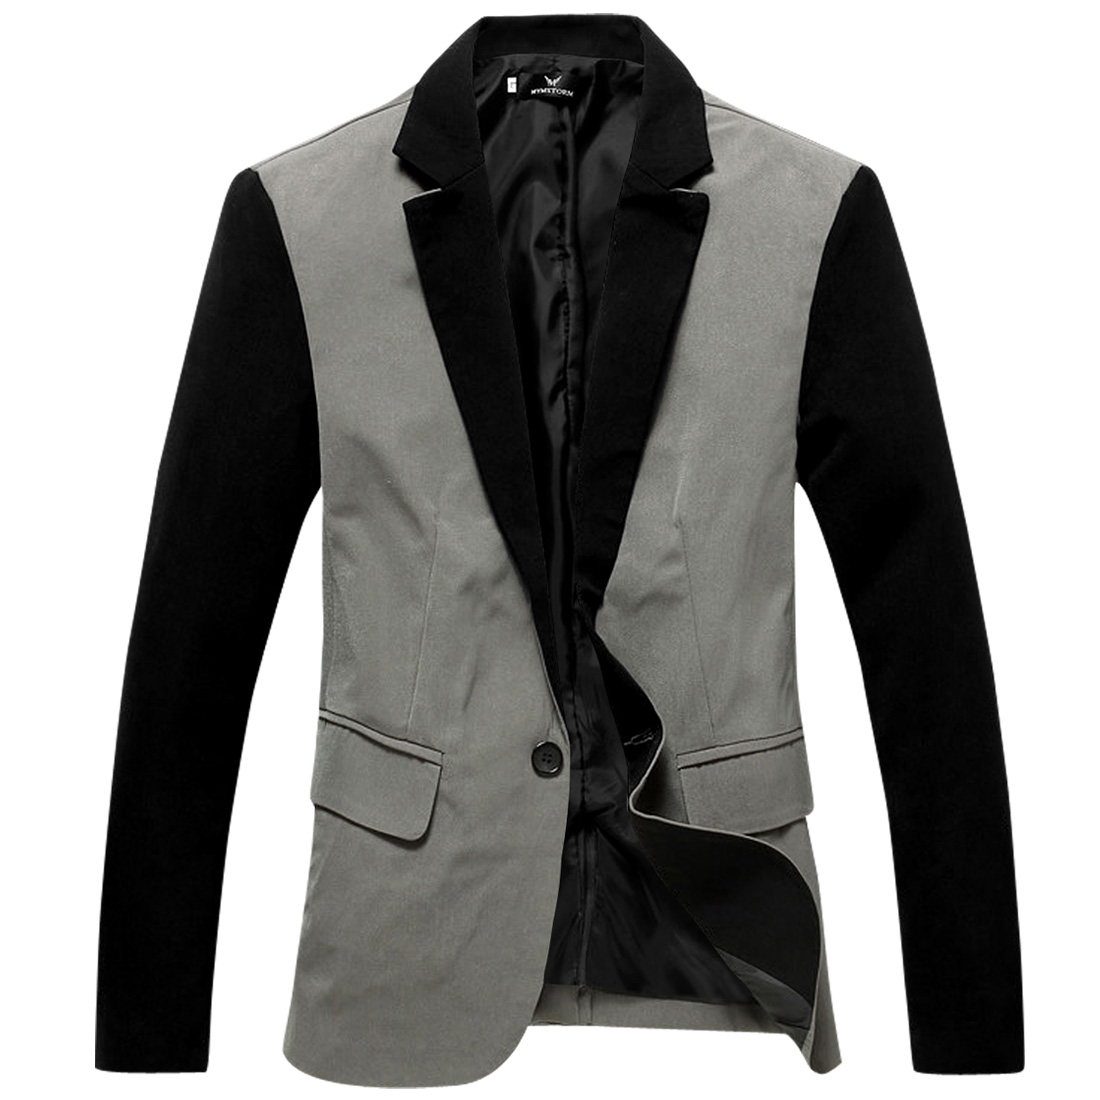 Men Button Up Long Sleeve Light Gray Casual Blazer Jacket S